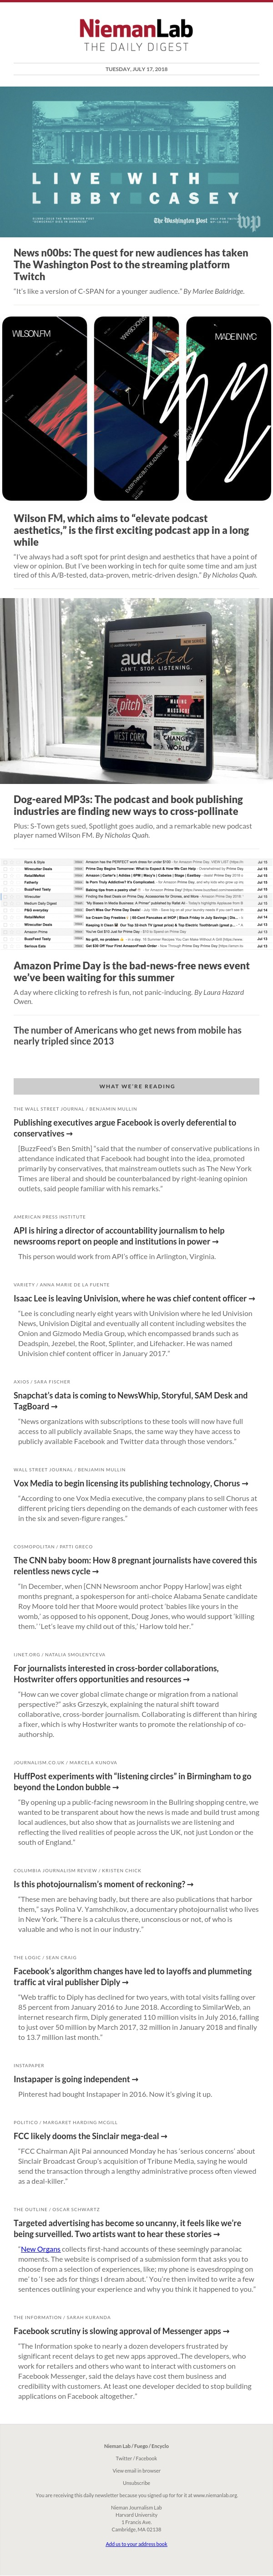 News n00bs: The quest for new audiences has taken The Washington Post to the streaming platform Twitch: The latest from Nieman Lab